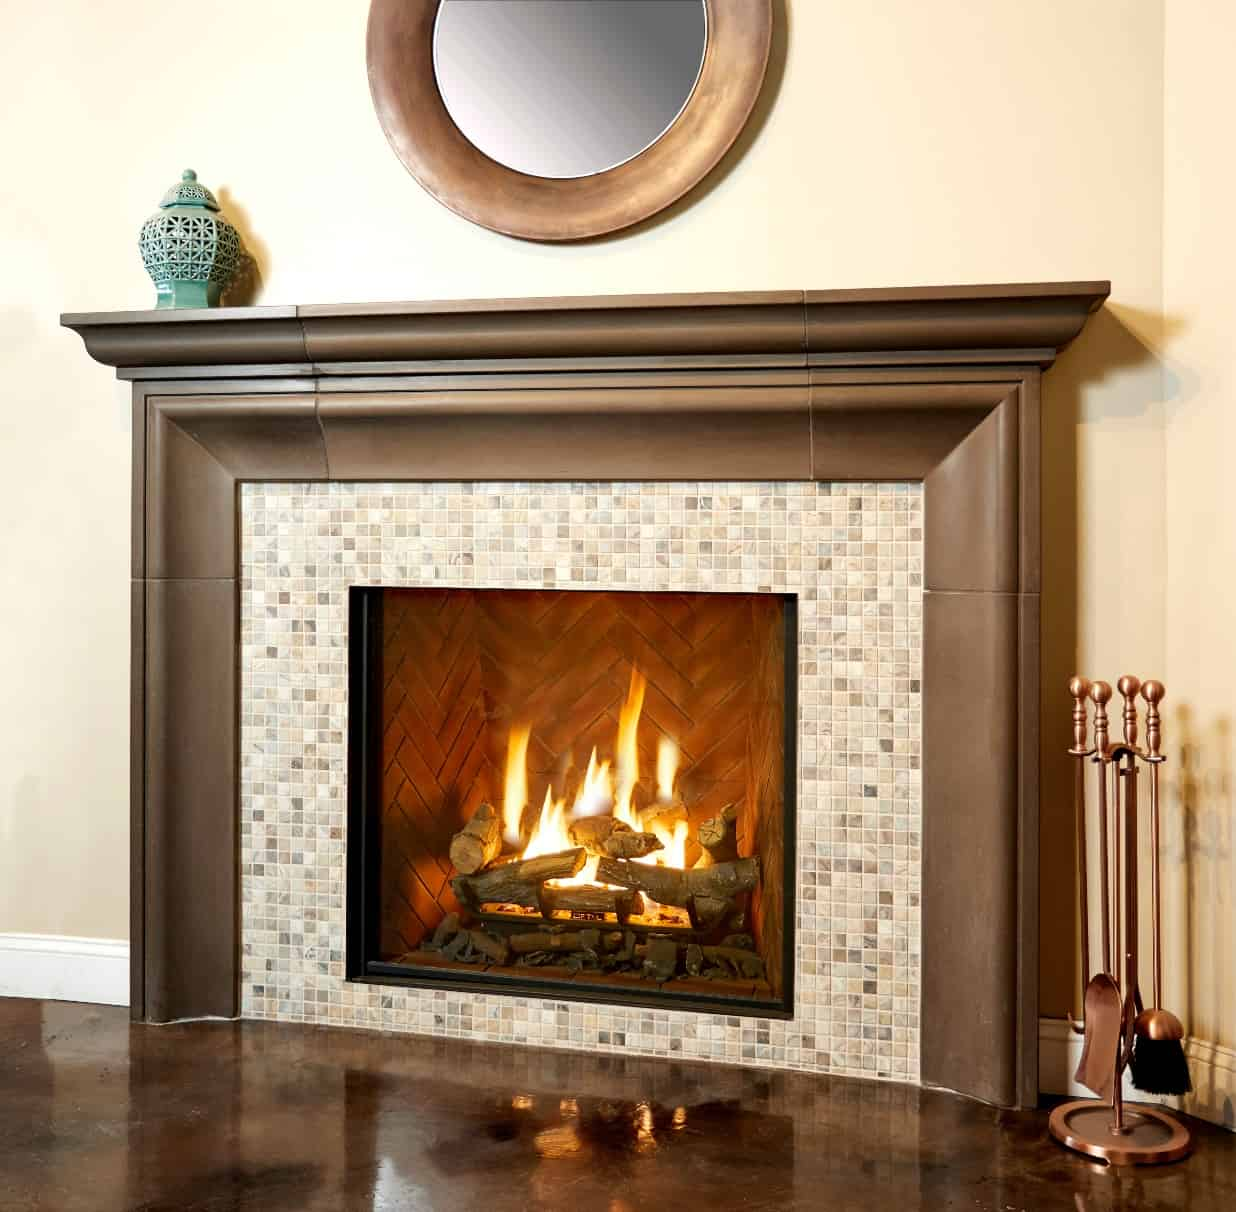 Convert Fireplace To Gas Burning Understanding The California Building Code Part I Fireplace Materials